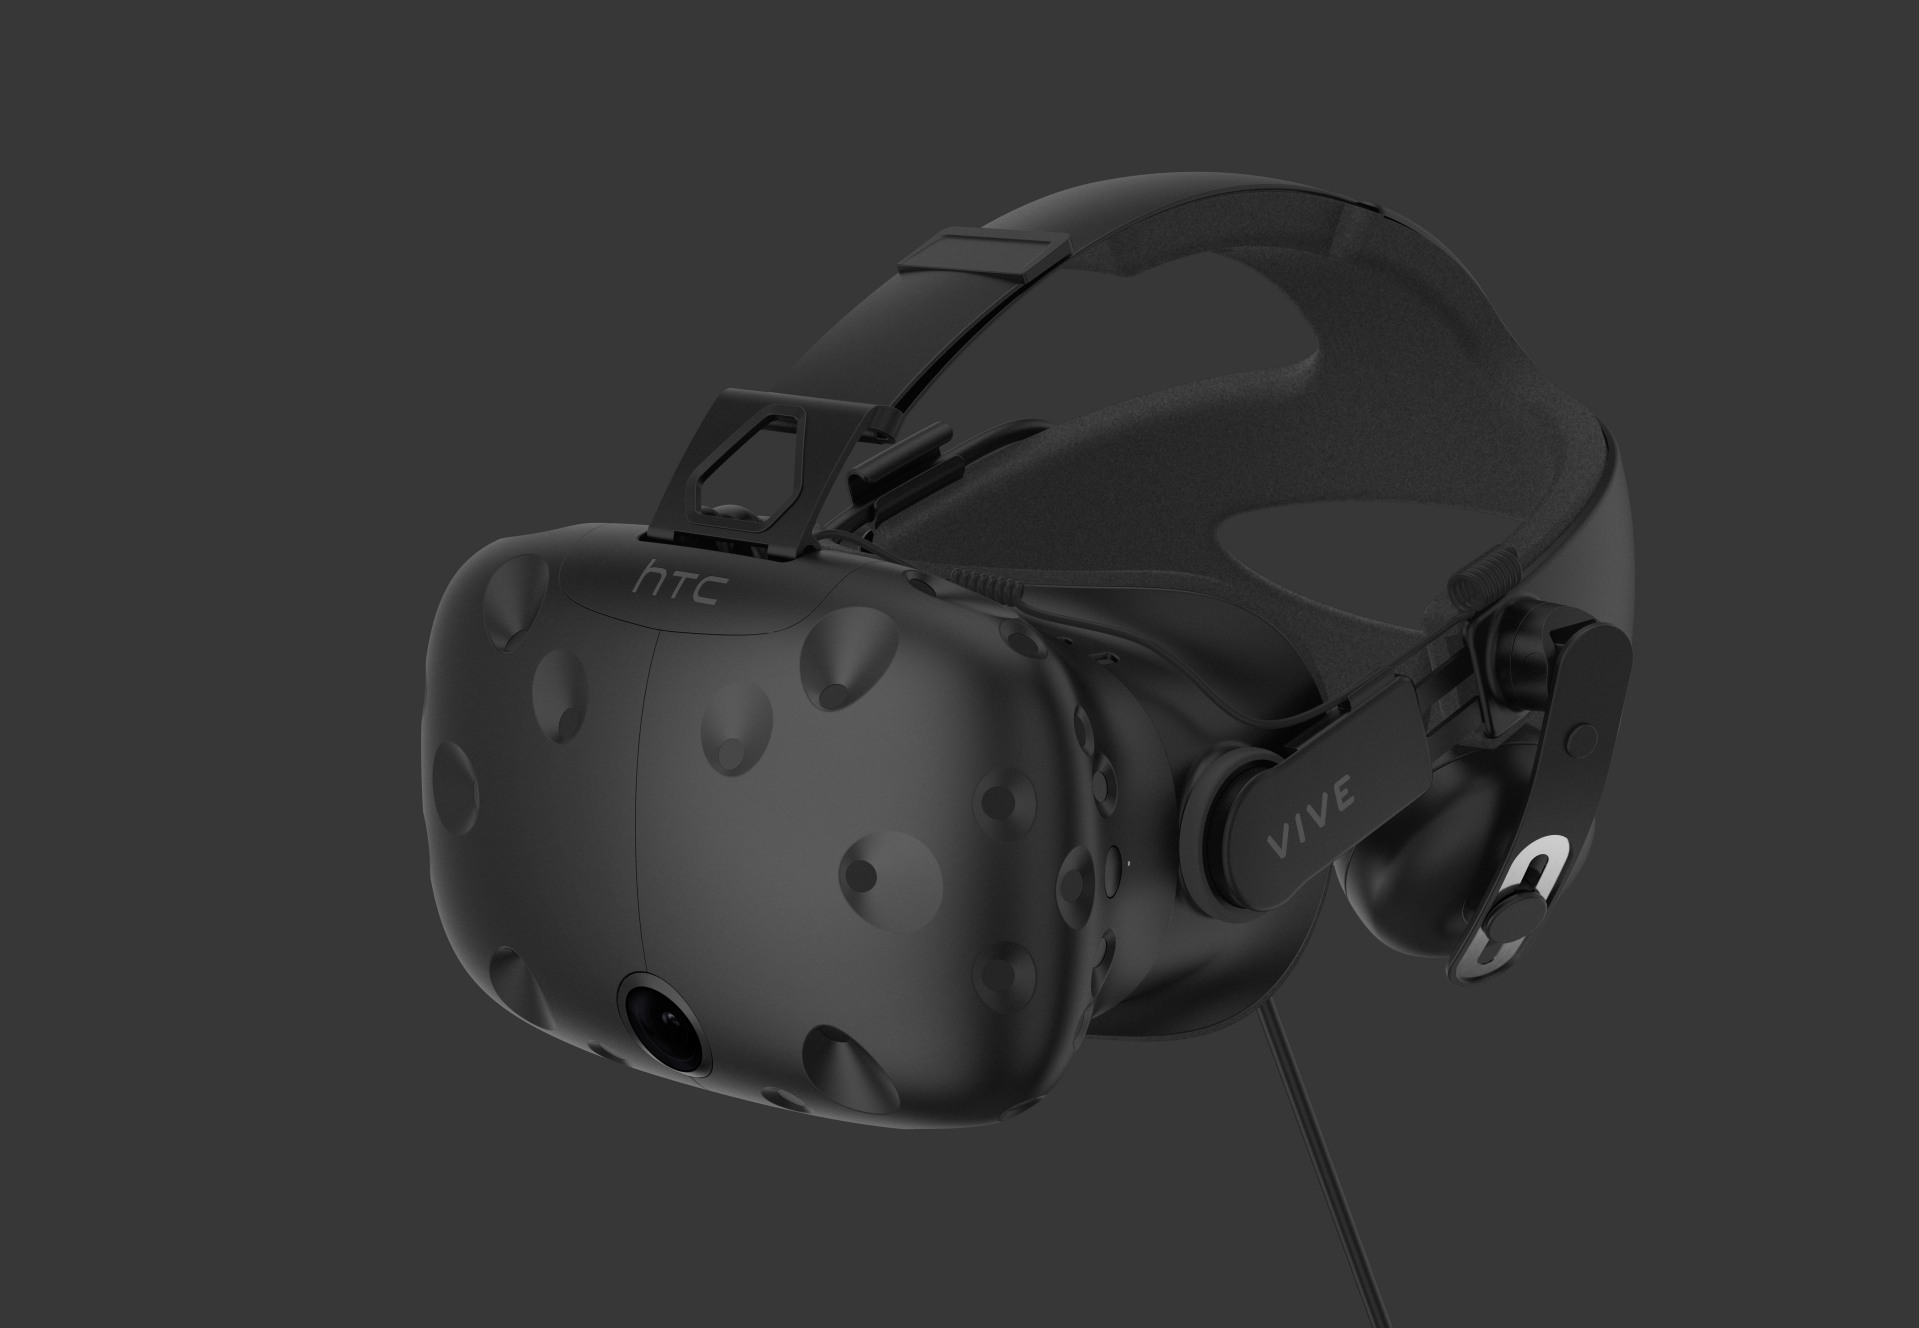 HTC introduces Vive tracker and deluxe audio strap at CES 2017